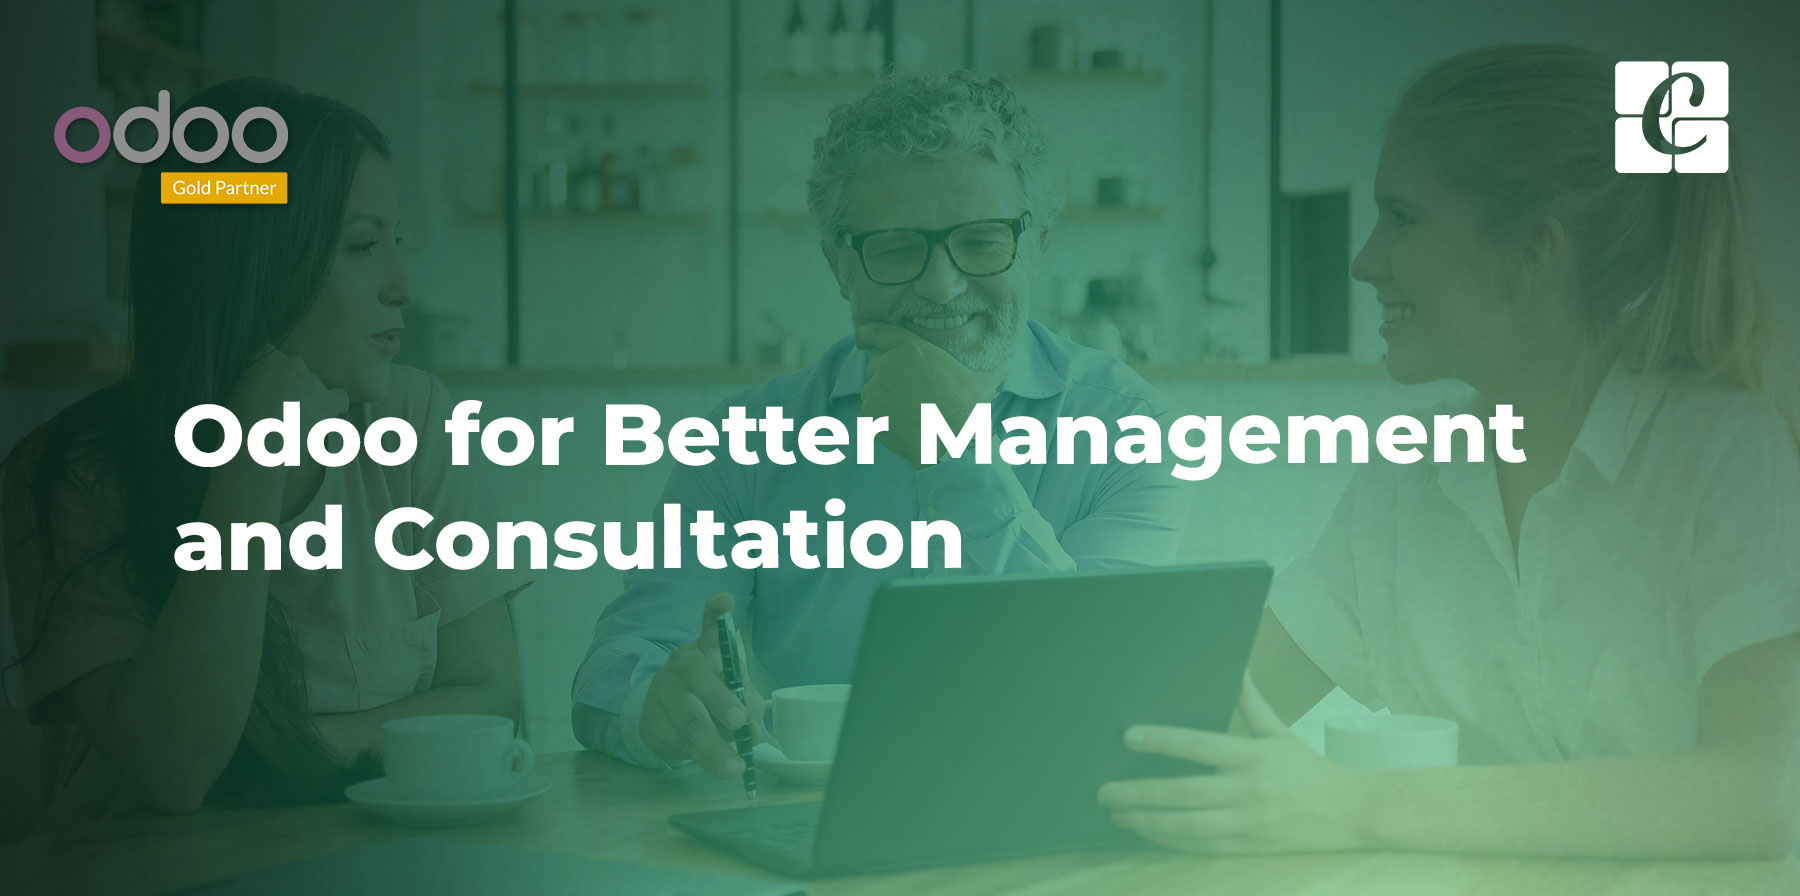 odoo-for-better-management-and-consultation.jpg